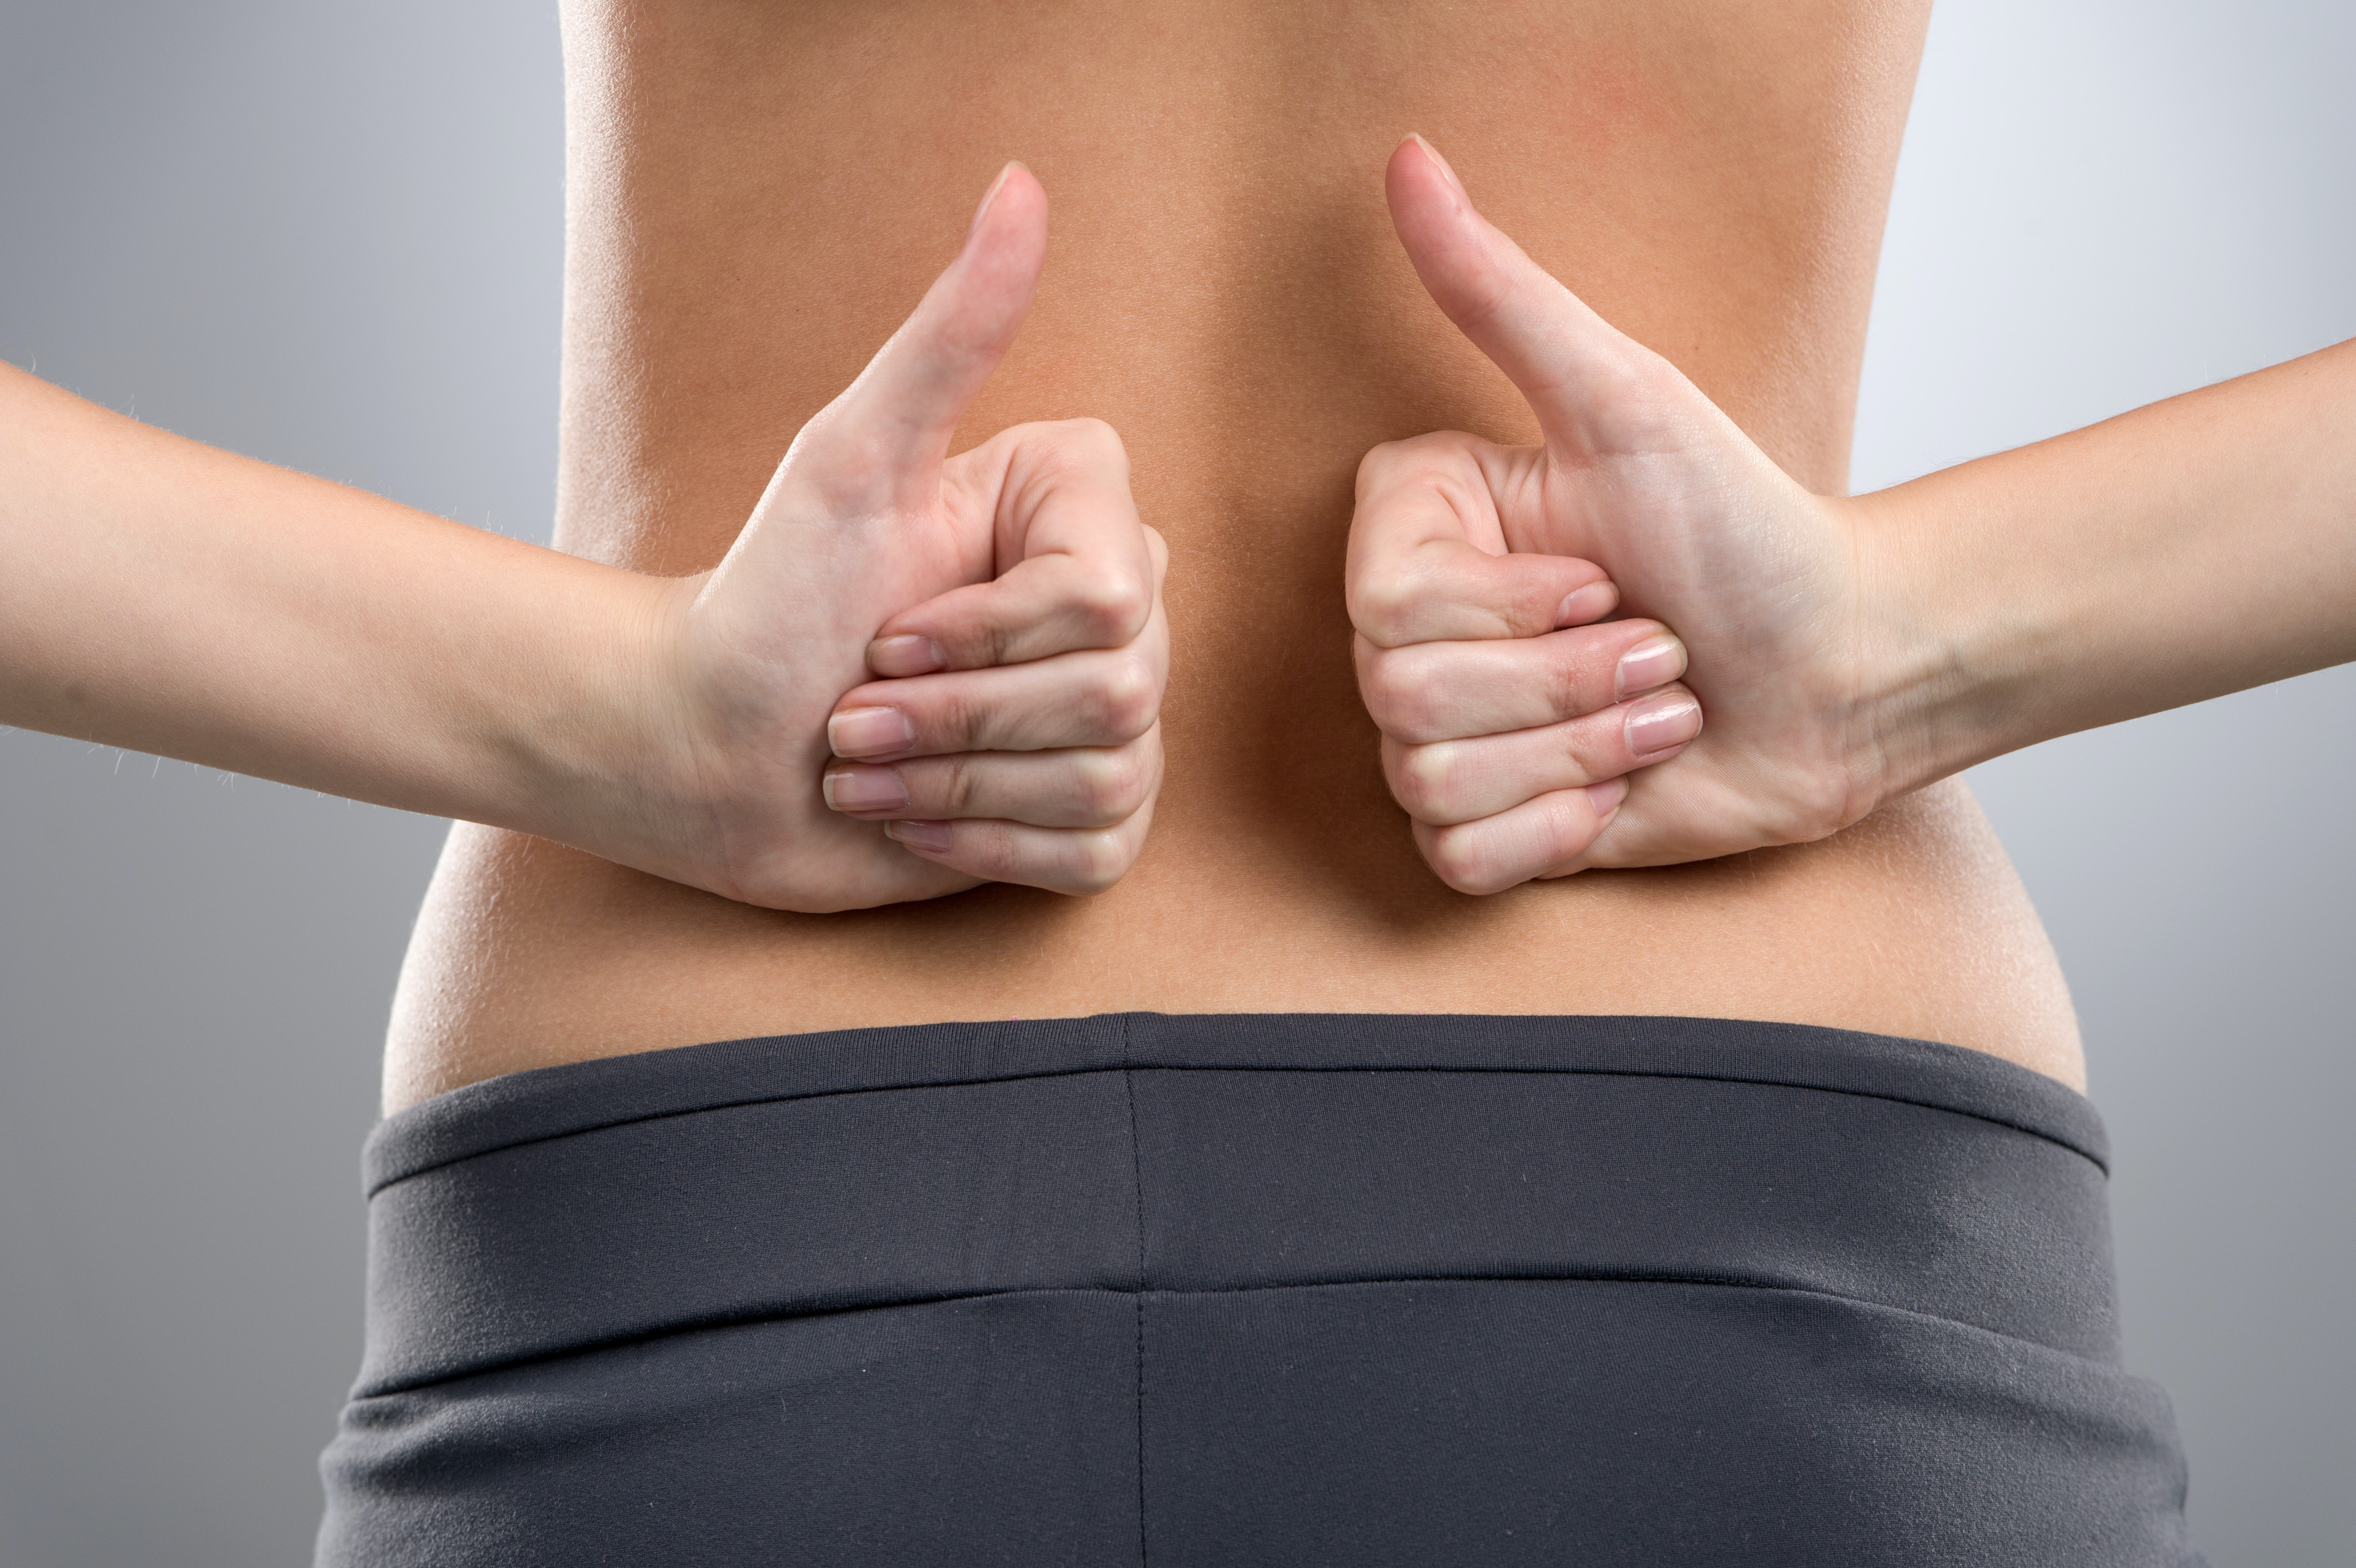 An image depicting a person suffering from back pain that shoots to the butt symptoms